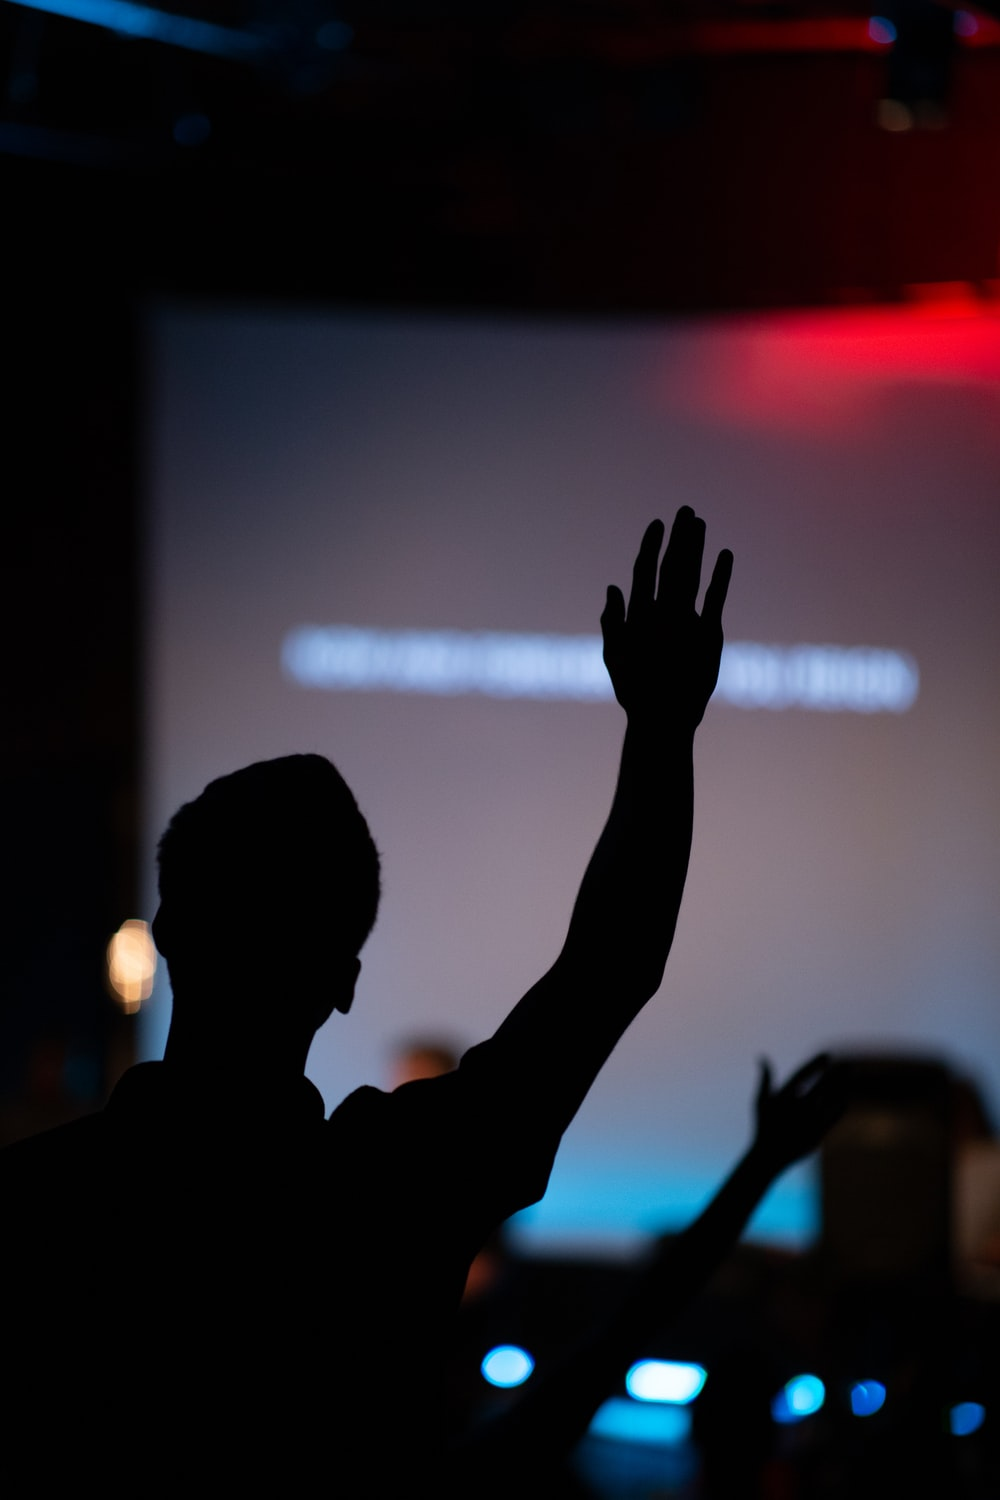 silhouette of person raising hand